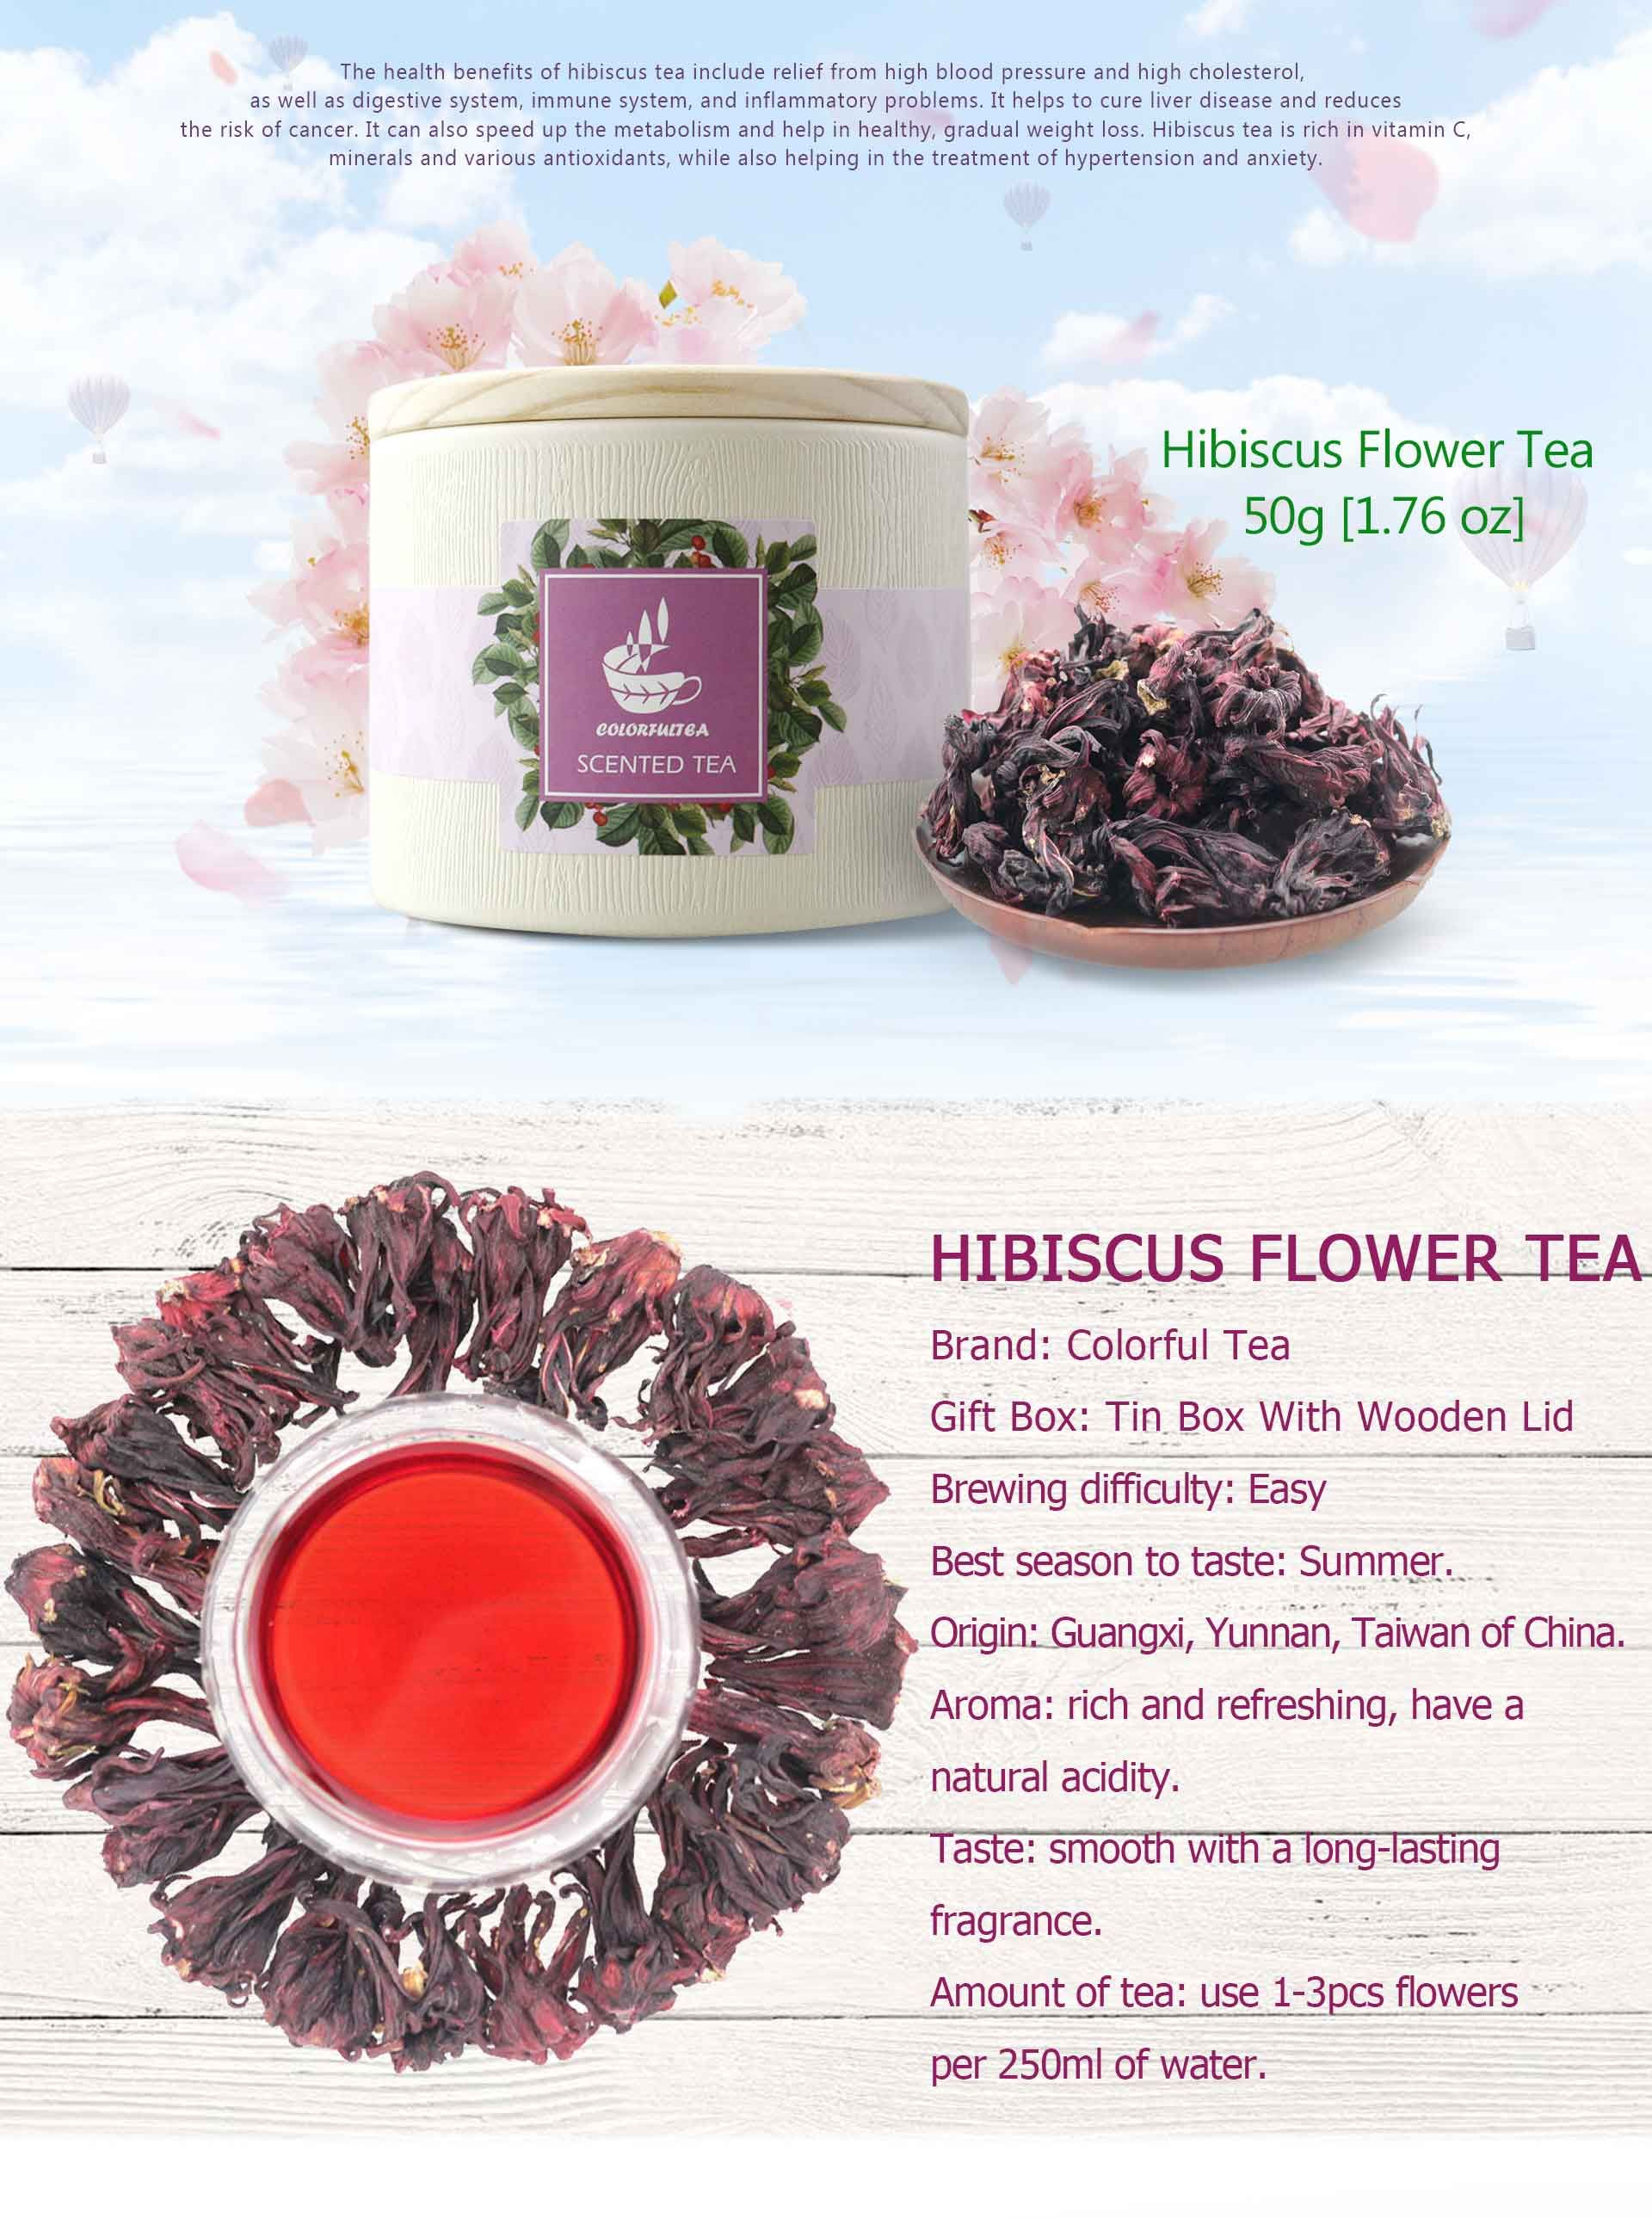 Httpcolorfulteahibiscus flower teaml good for both httpcolorfulteahibiscus flower tea izmirmasajfo